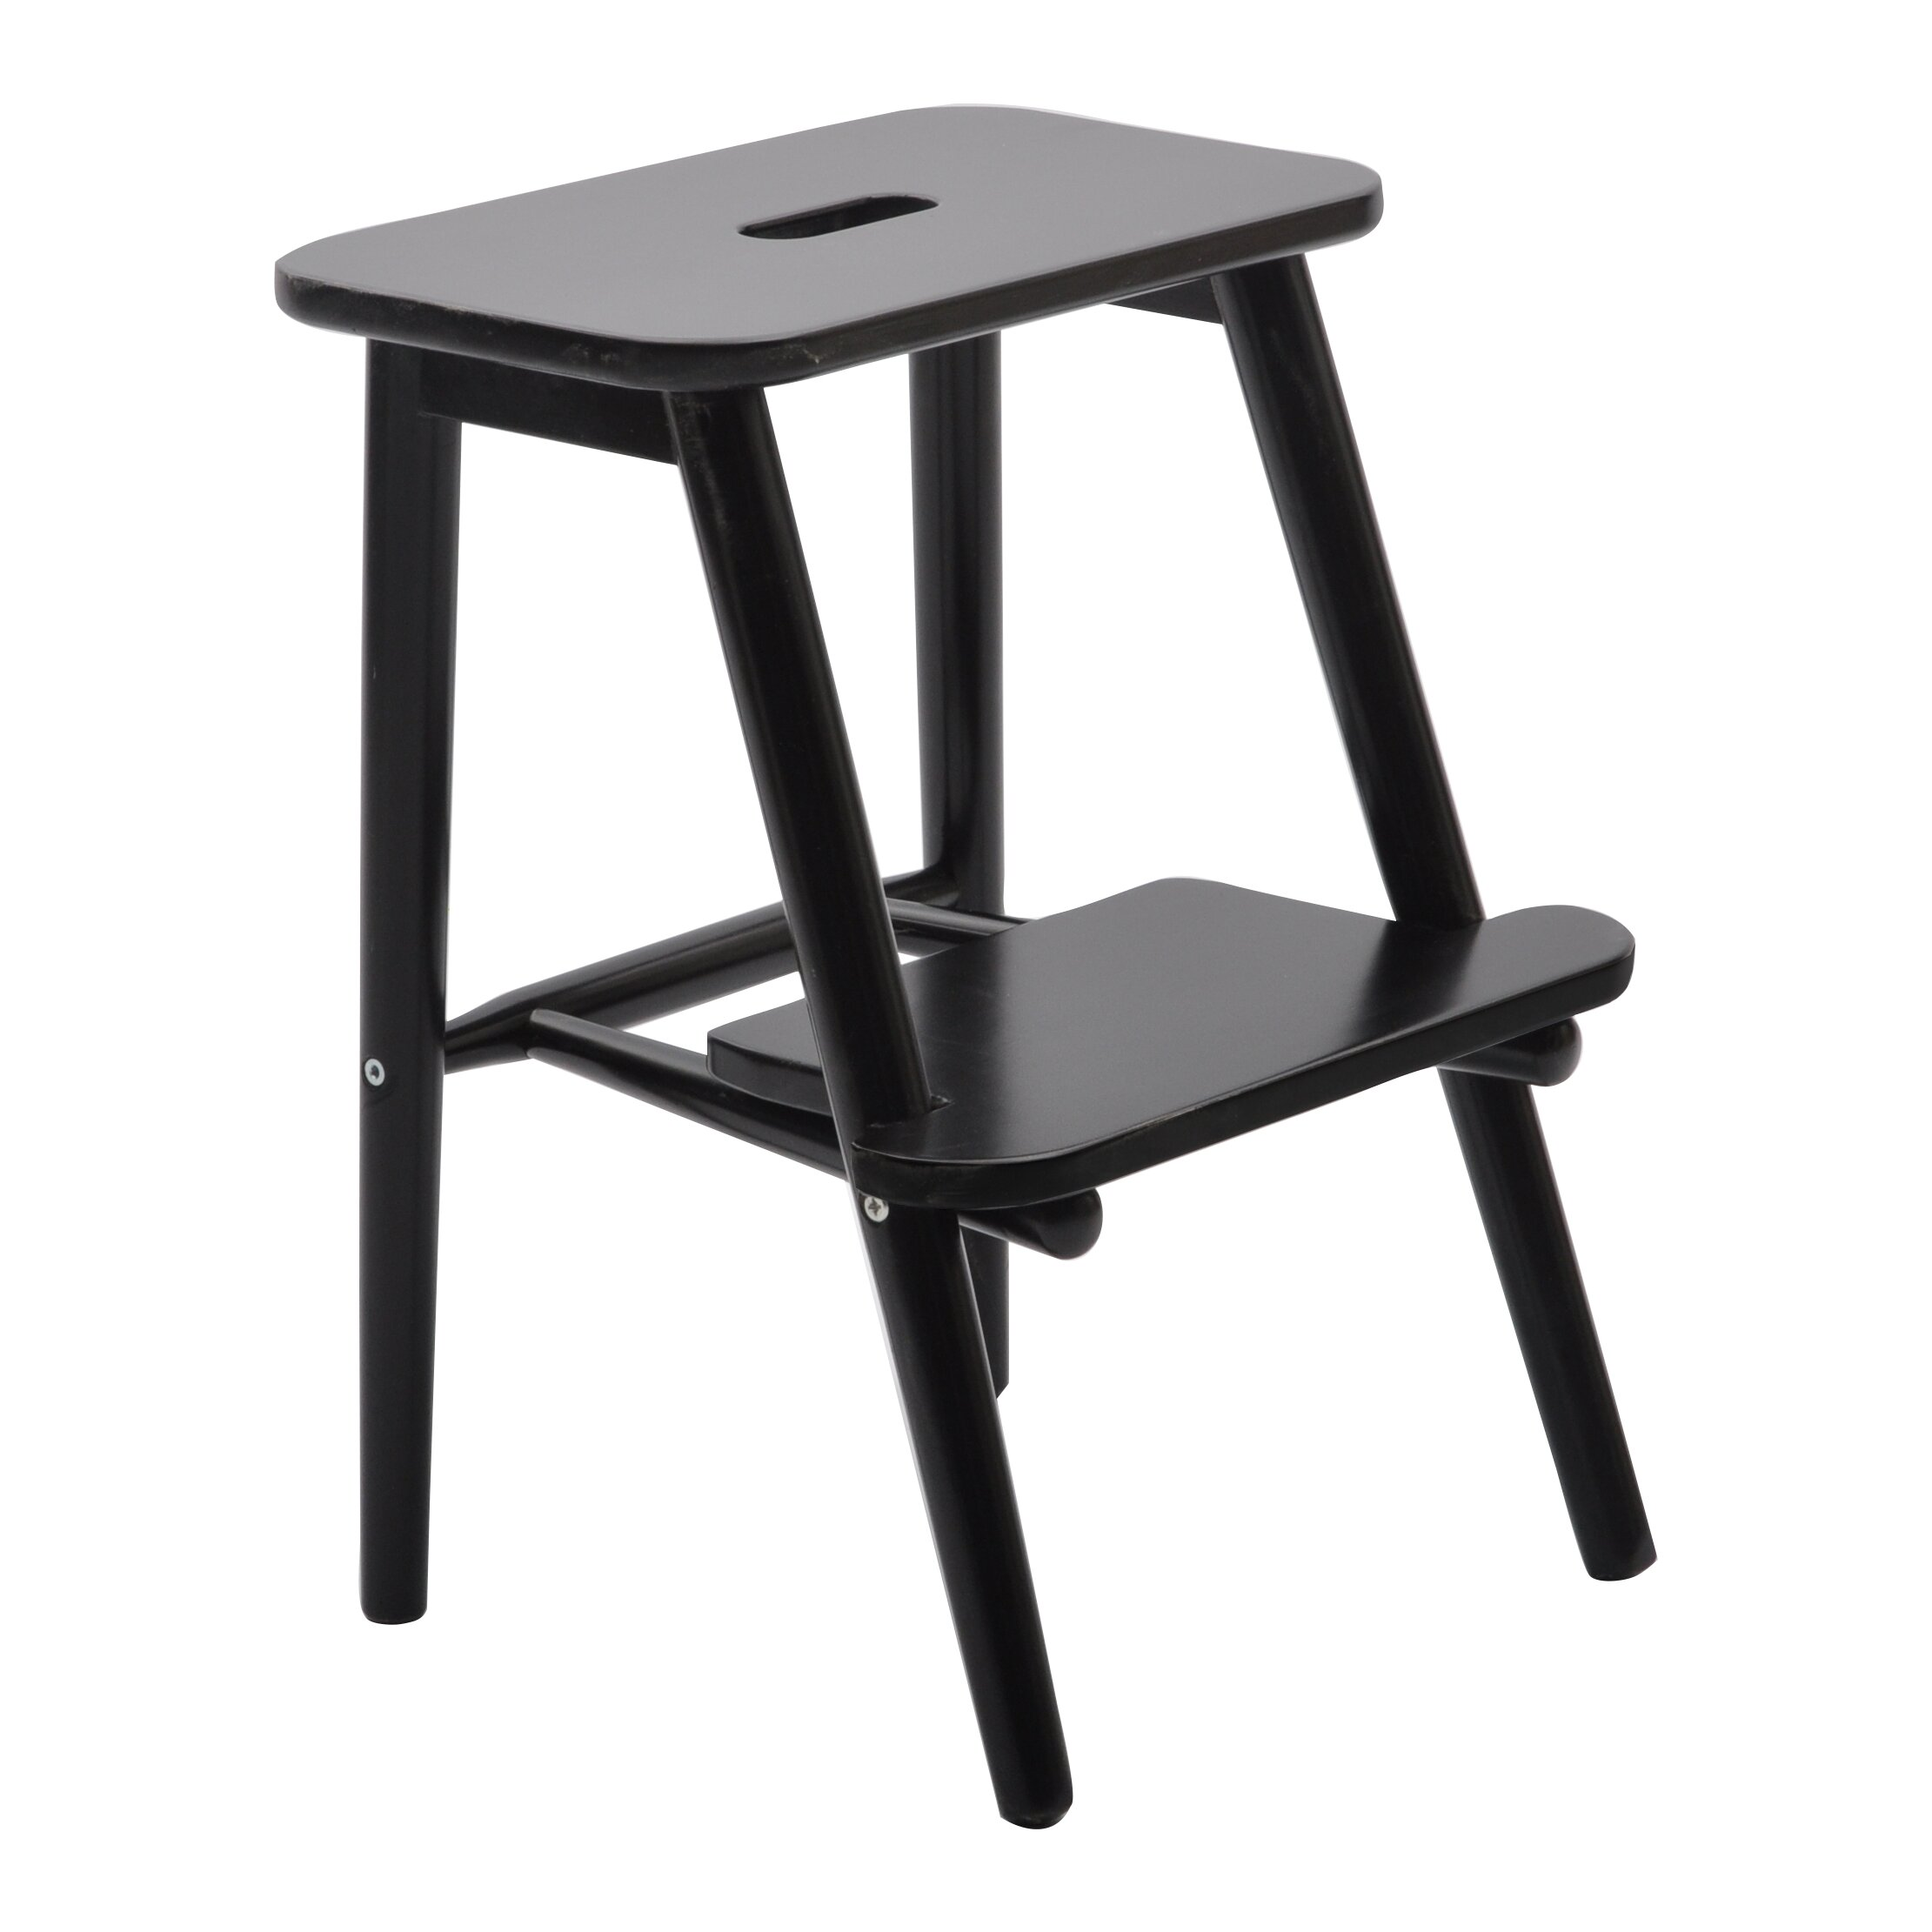 Perry Wood Decorative Step Stool  Wayfair Uk. Usp 797 Clean Room. Design And Decorate. Multi Room Audio And Video Systems. Decorating The Bathroom. Cheap Hotel Rooms Daytona Beach Florida. Cheap Room Las Vegas. Decorative Floor Mats. Dining Room Window Treatment Ideas